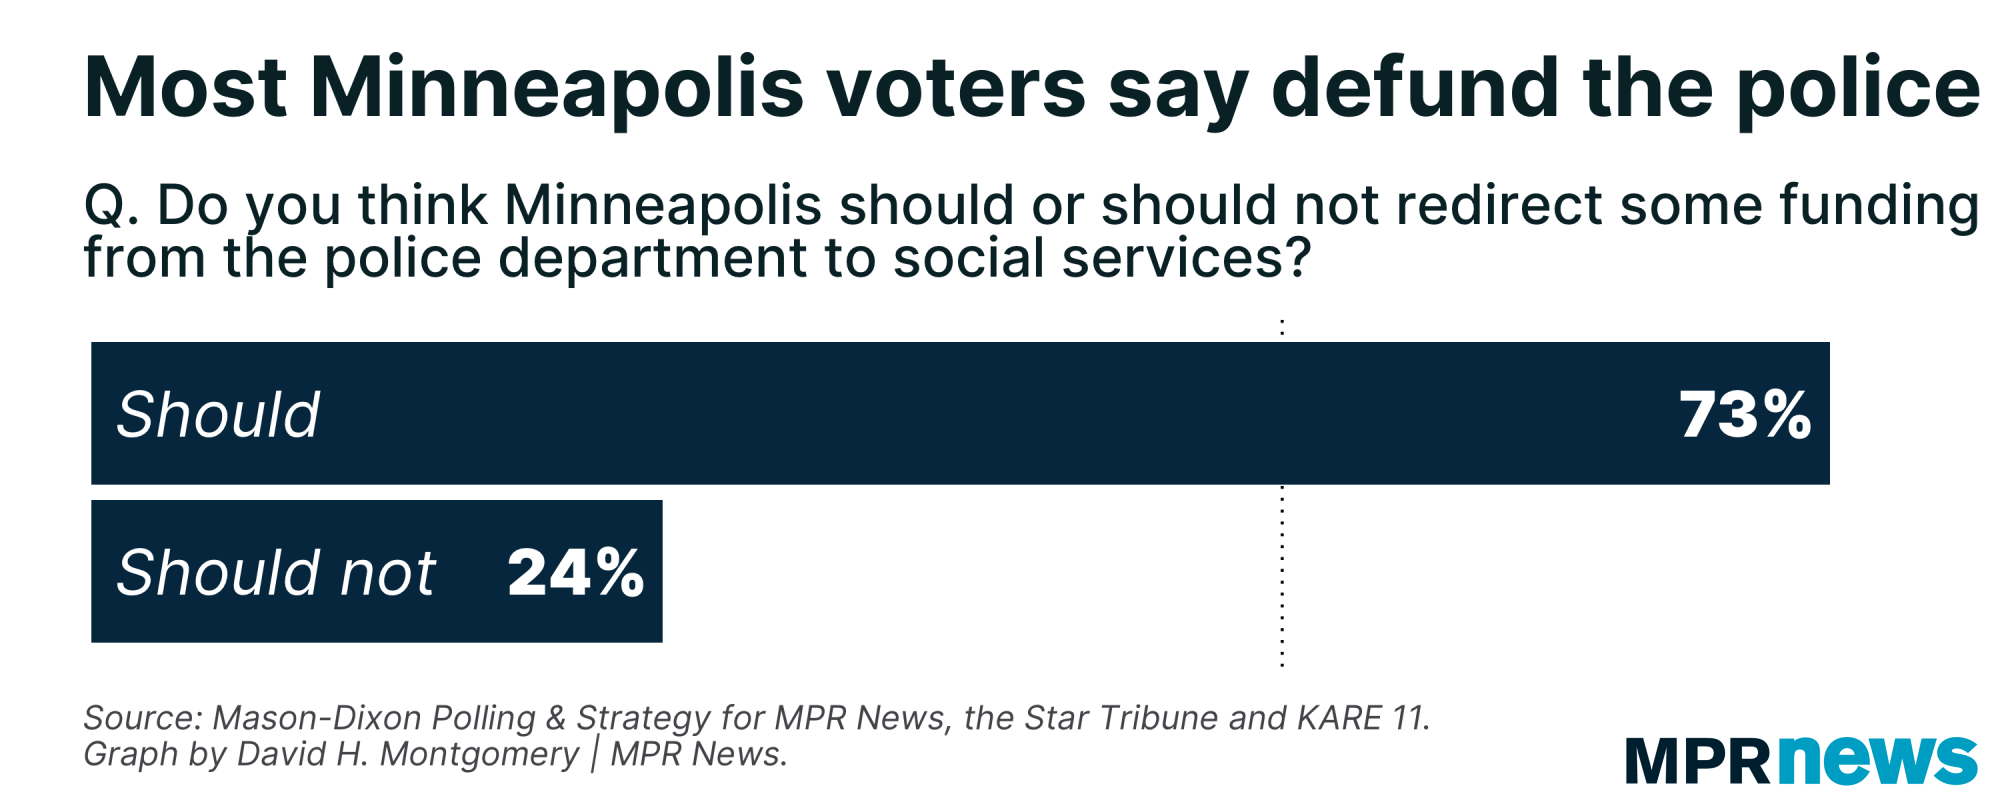 Most Minneapolis voters support defunding the Minneapolis police